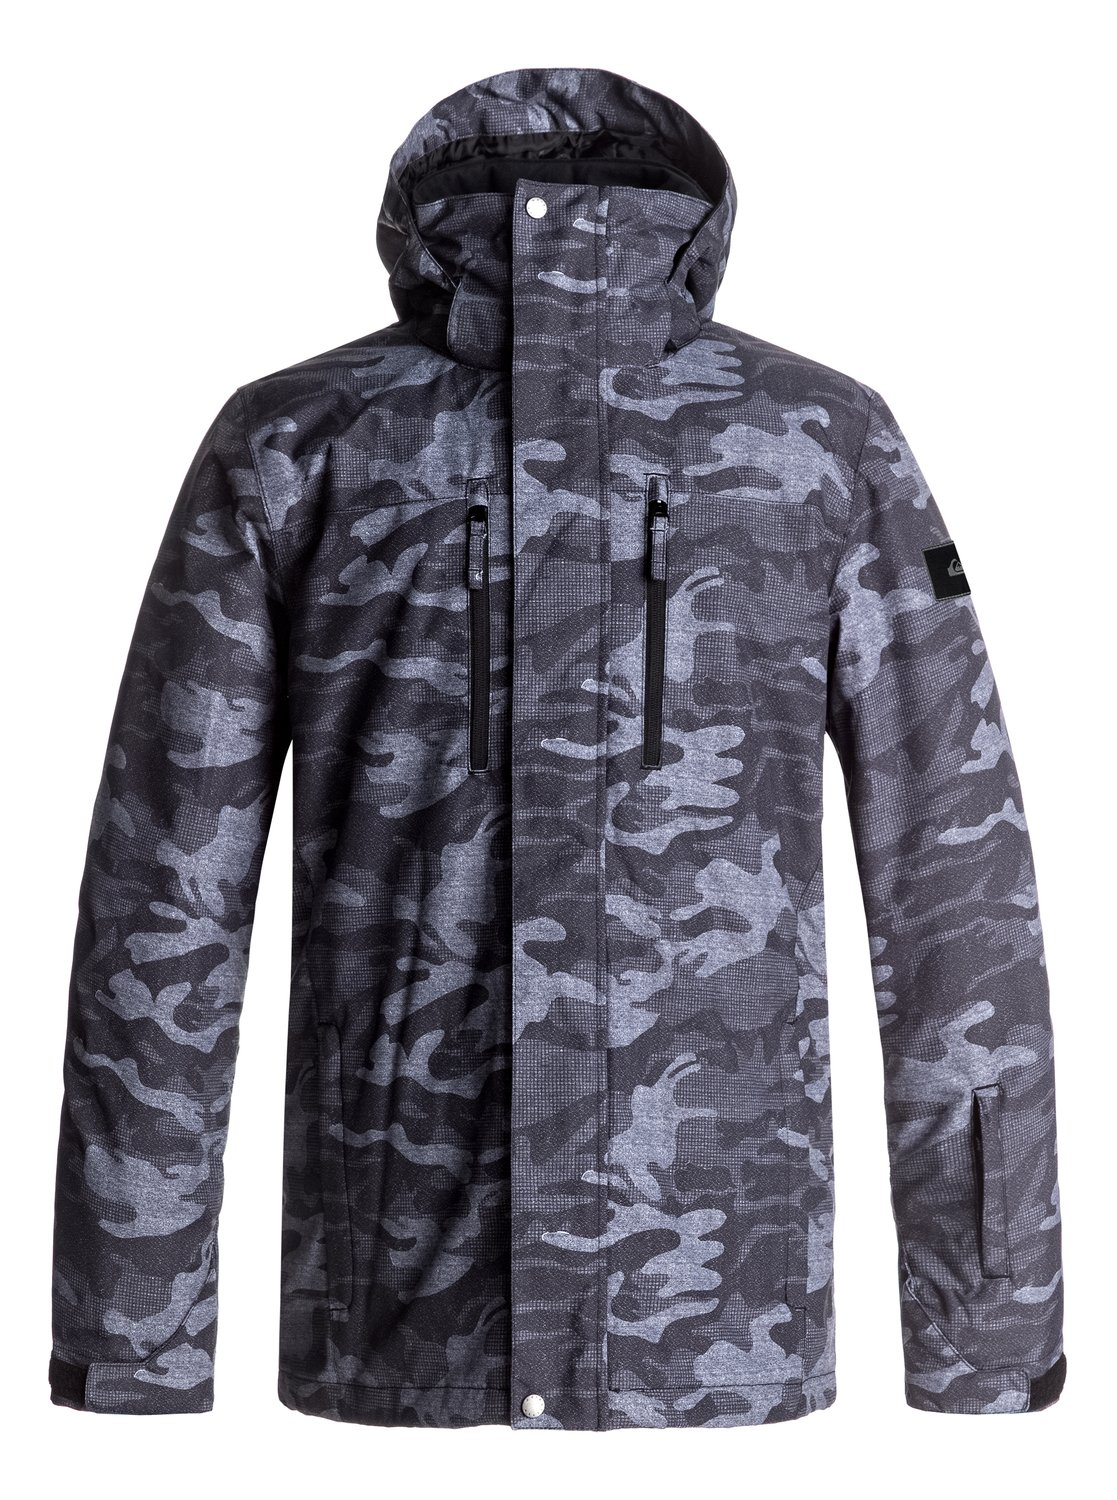 Сноубордическая куртка Mission куртка quiksilver mission irishplaid ins jacket irishplaid